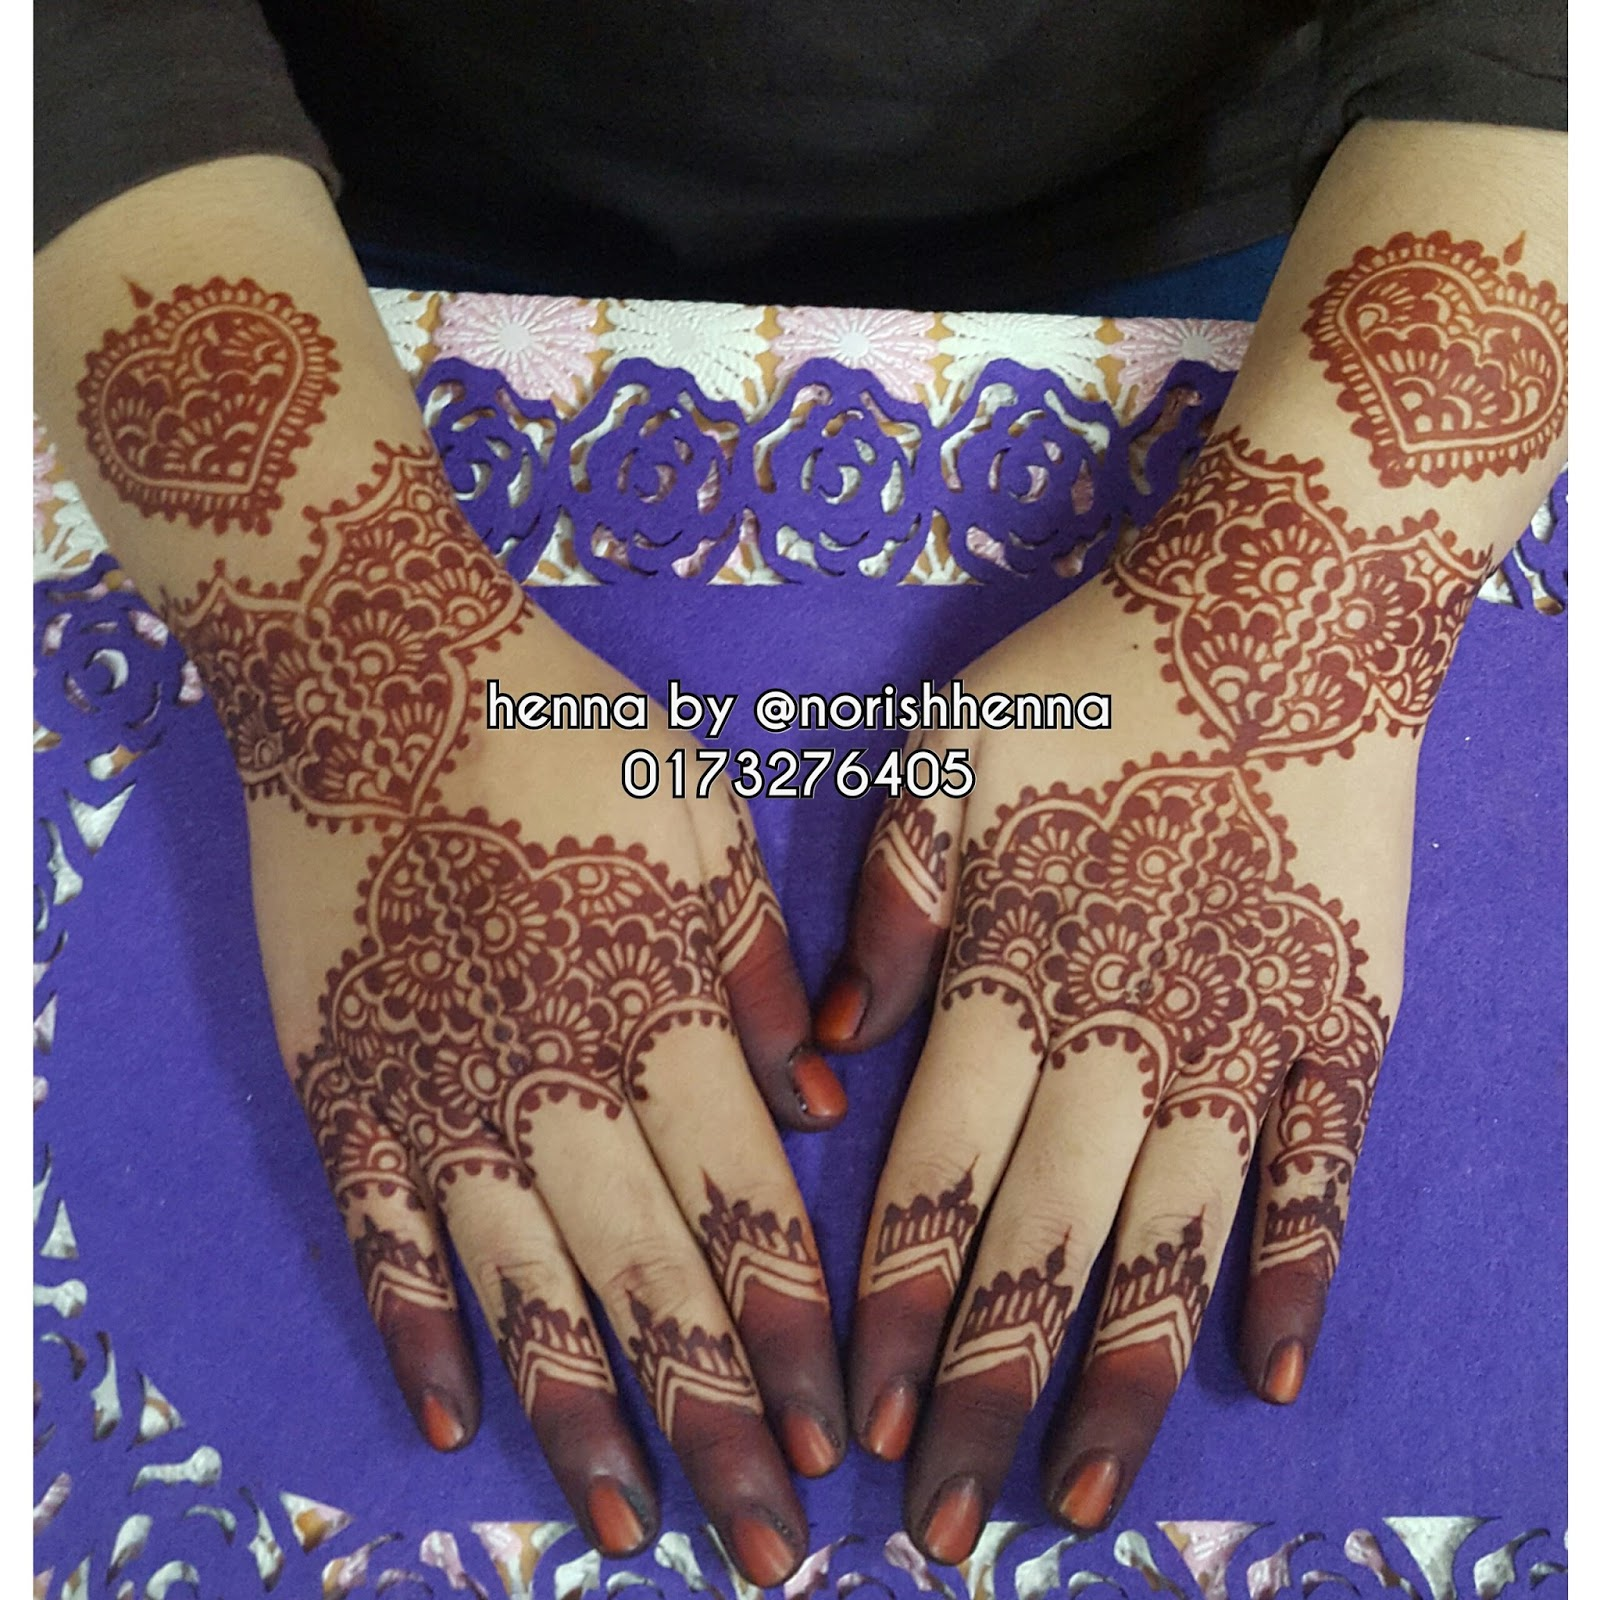 YOUR MALAYSIAN ONE STOP HENNA CENTER HARGA INAI 2016